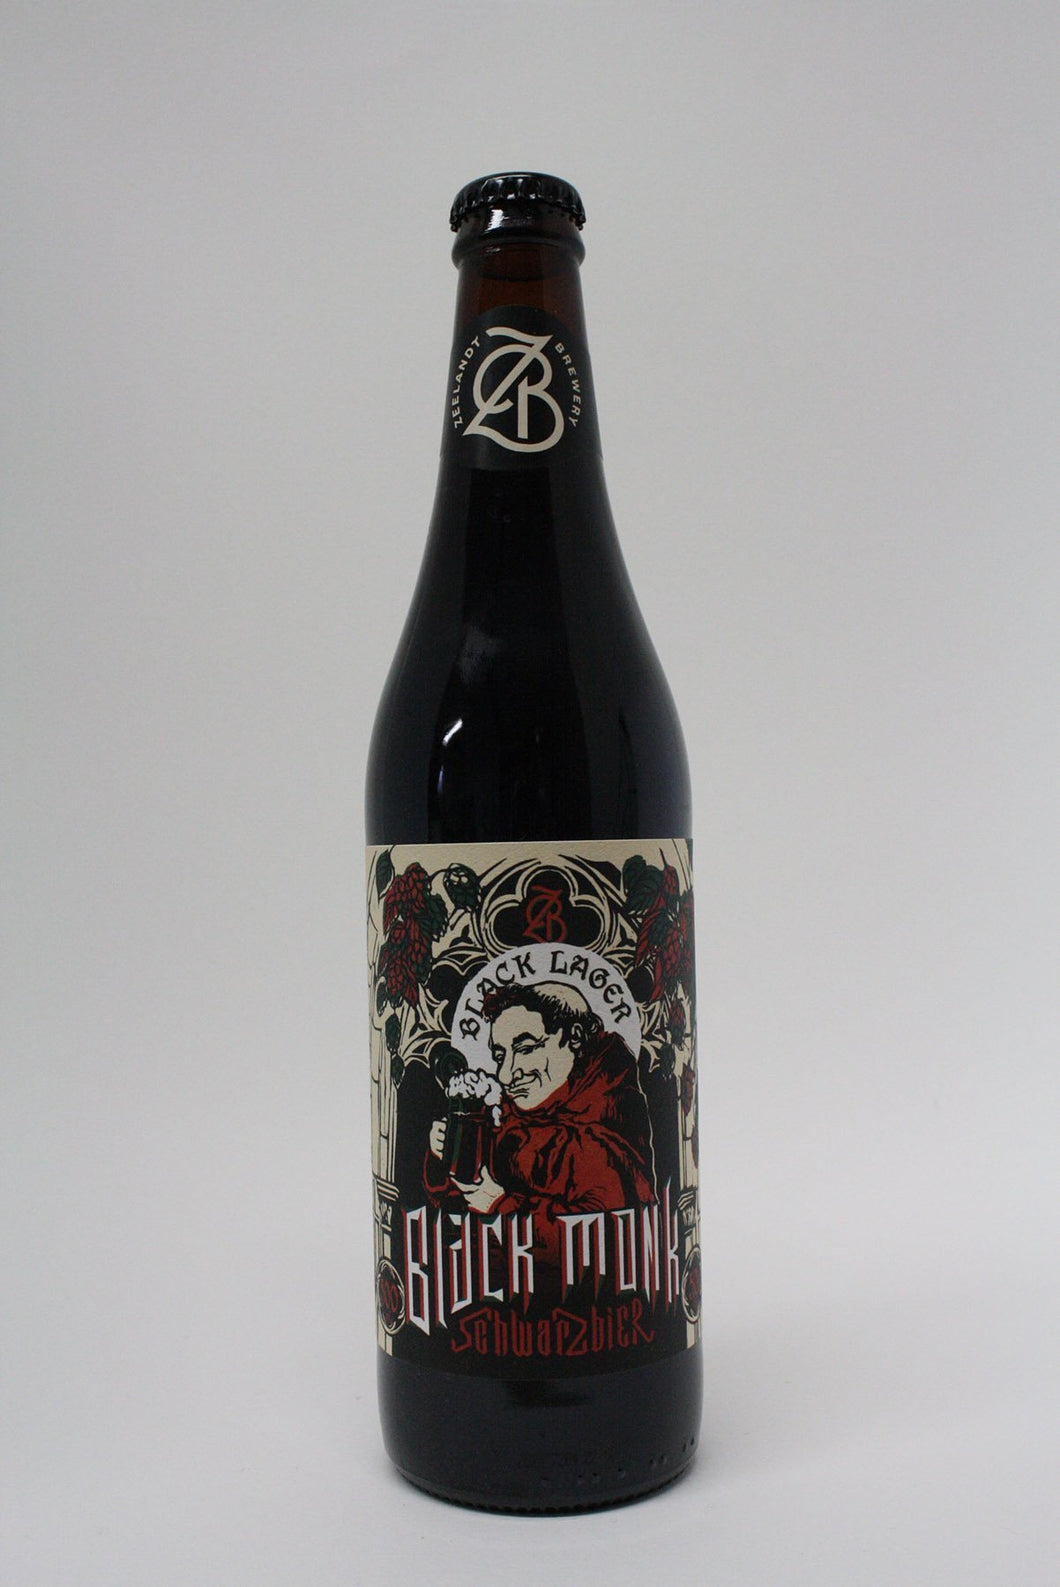 Zeelandt - Black Monk Black Lager 500ml